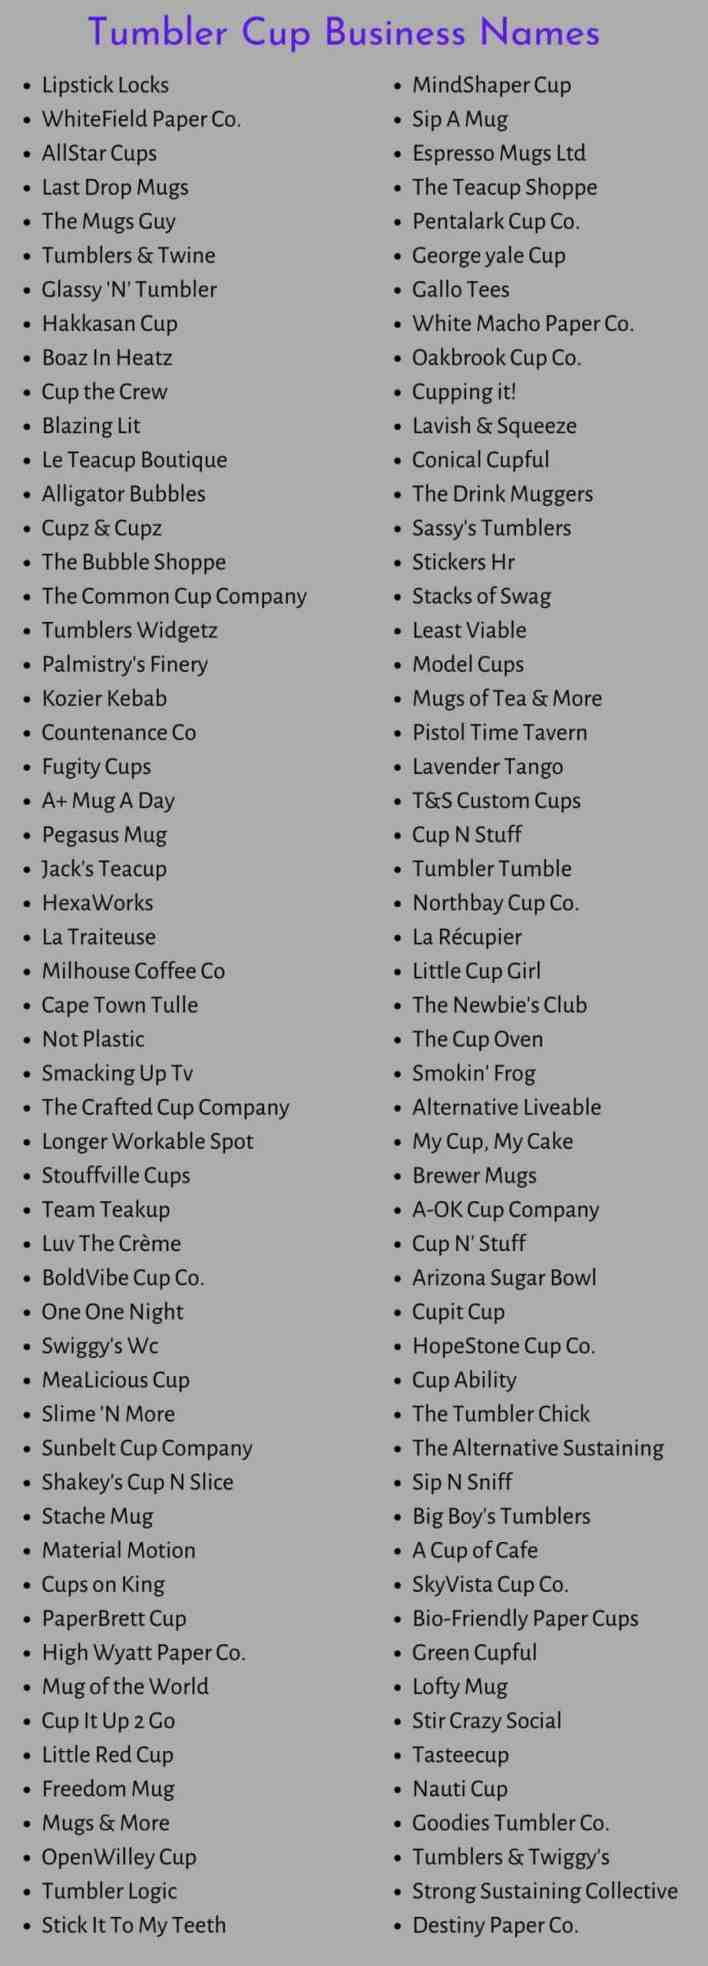 Tumbler Cup Business Names